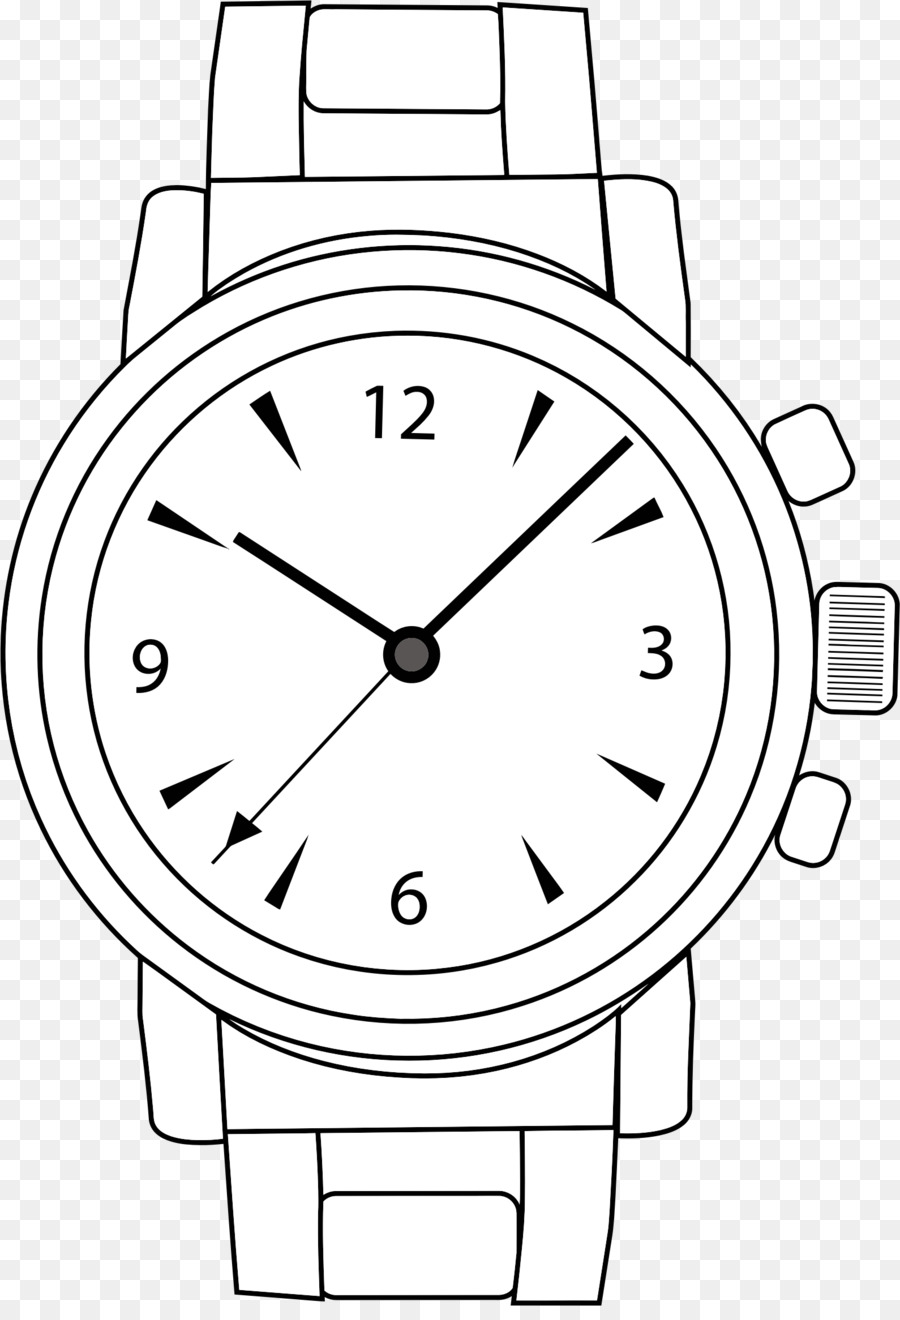 Analog watch Pocket watch Cli - Watch Clipart